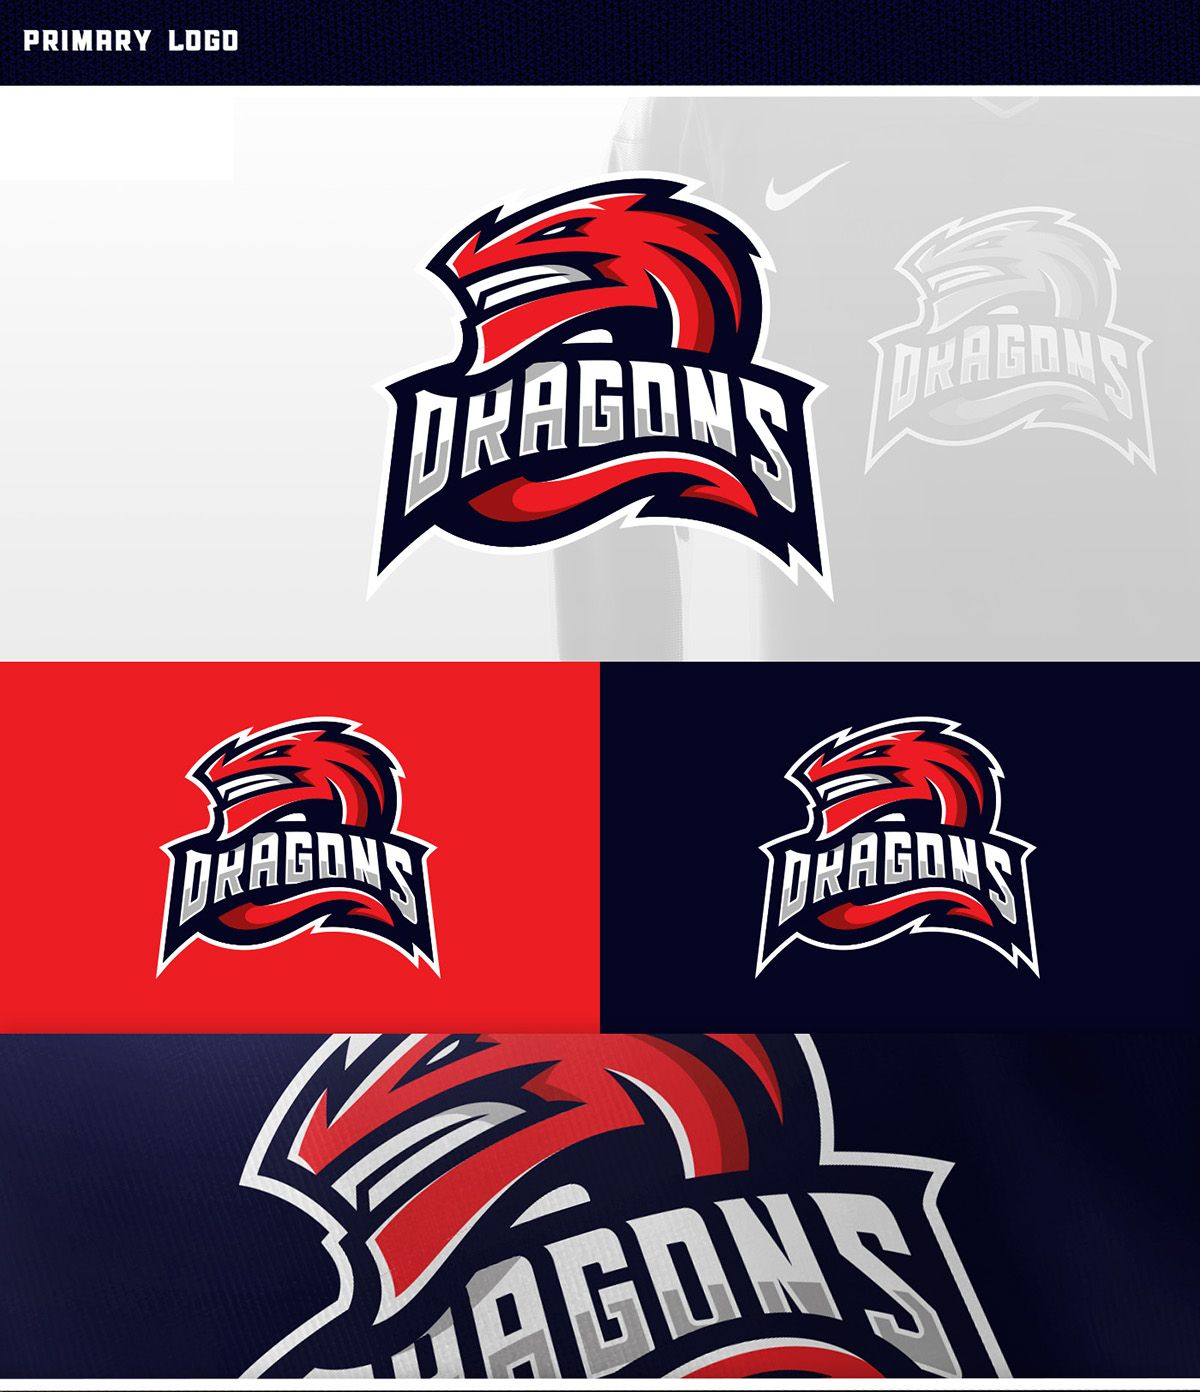 dragons sports logo concept this is another sports logo